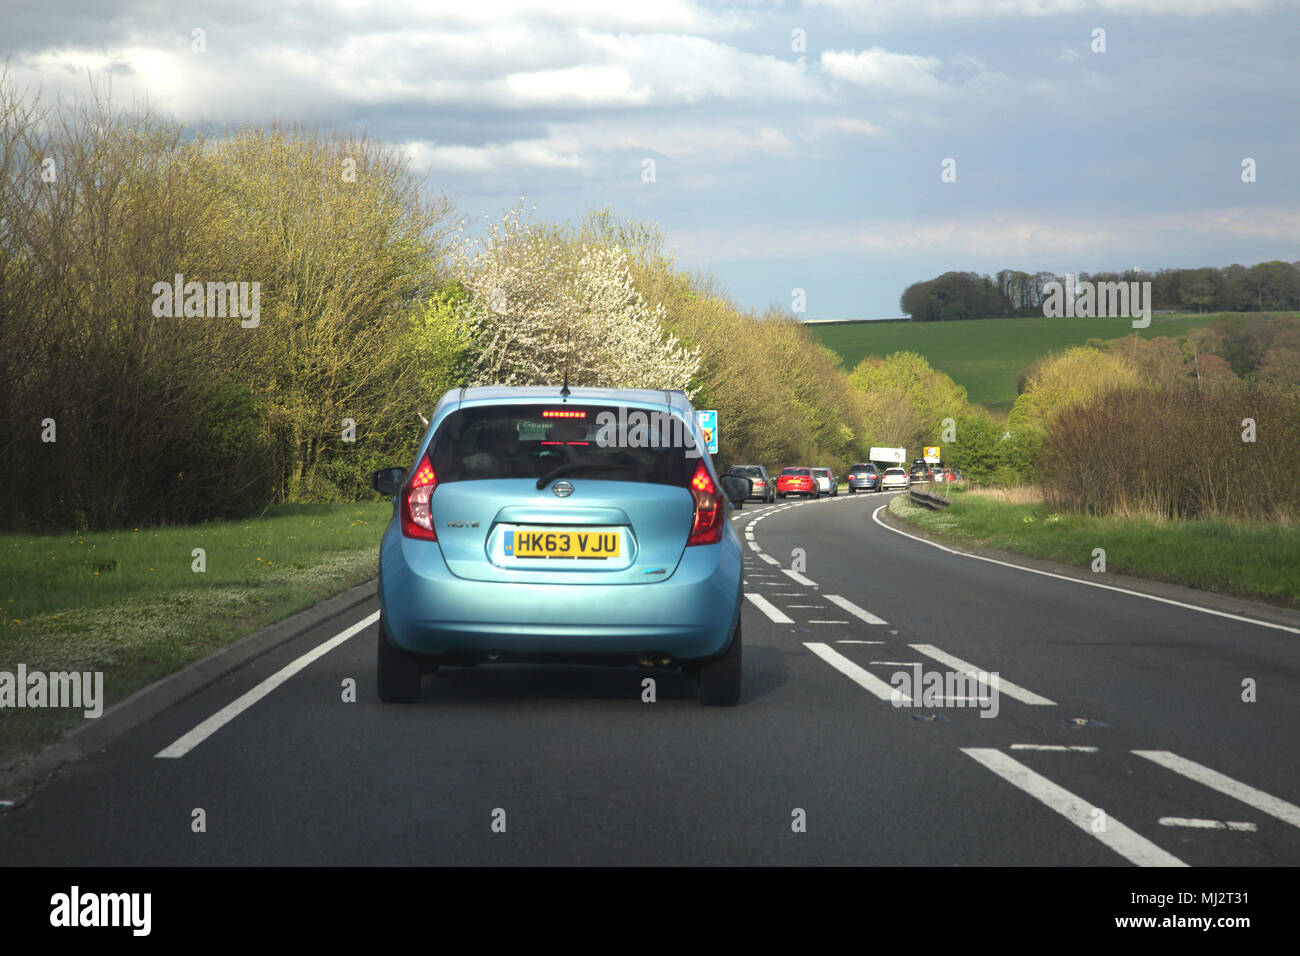 Traffic on the A303 Trunk Road England - Stock Image